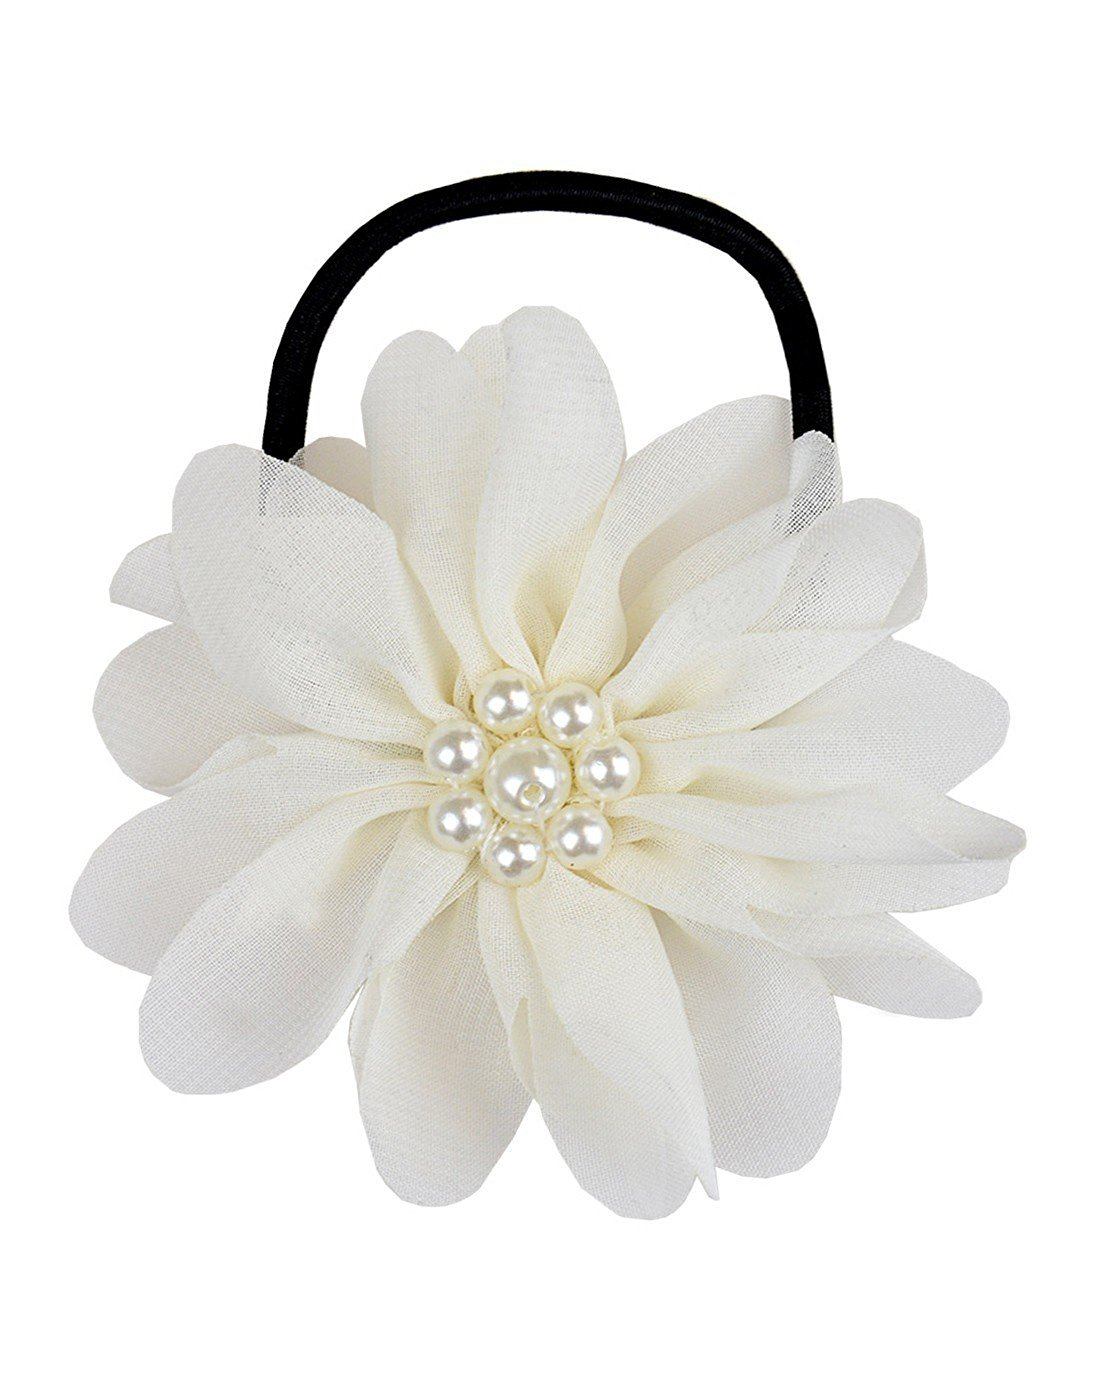 Cheap jasmine flower hair tie find jasmine flower hair tie deals on get quotations flower hair tie buy 1 get 1 free izmirmasajfo